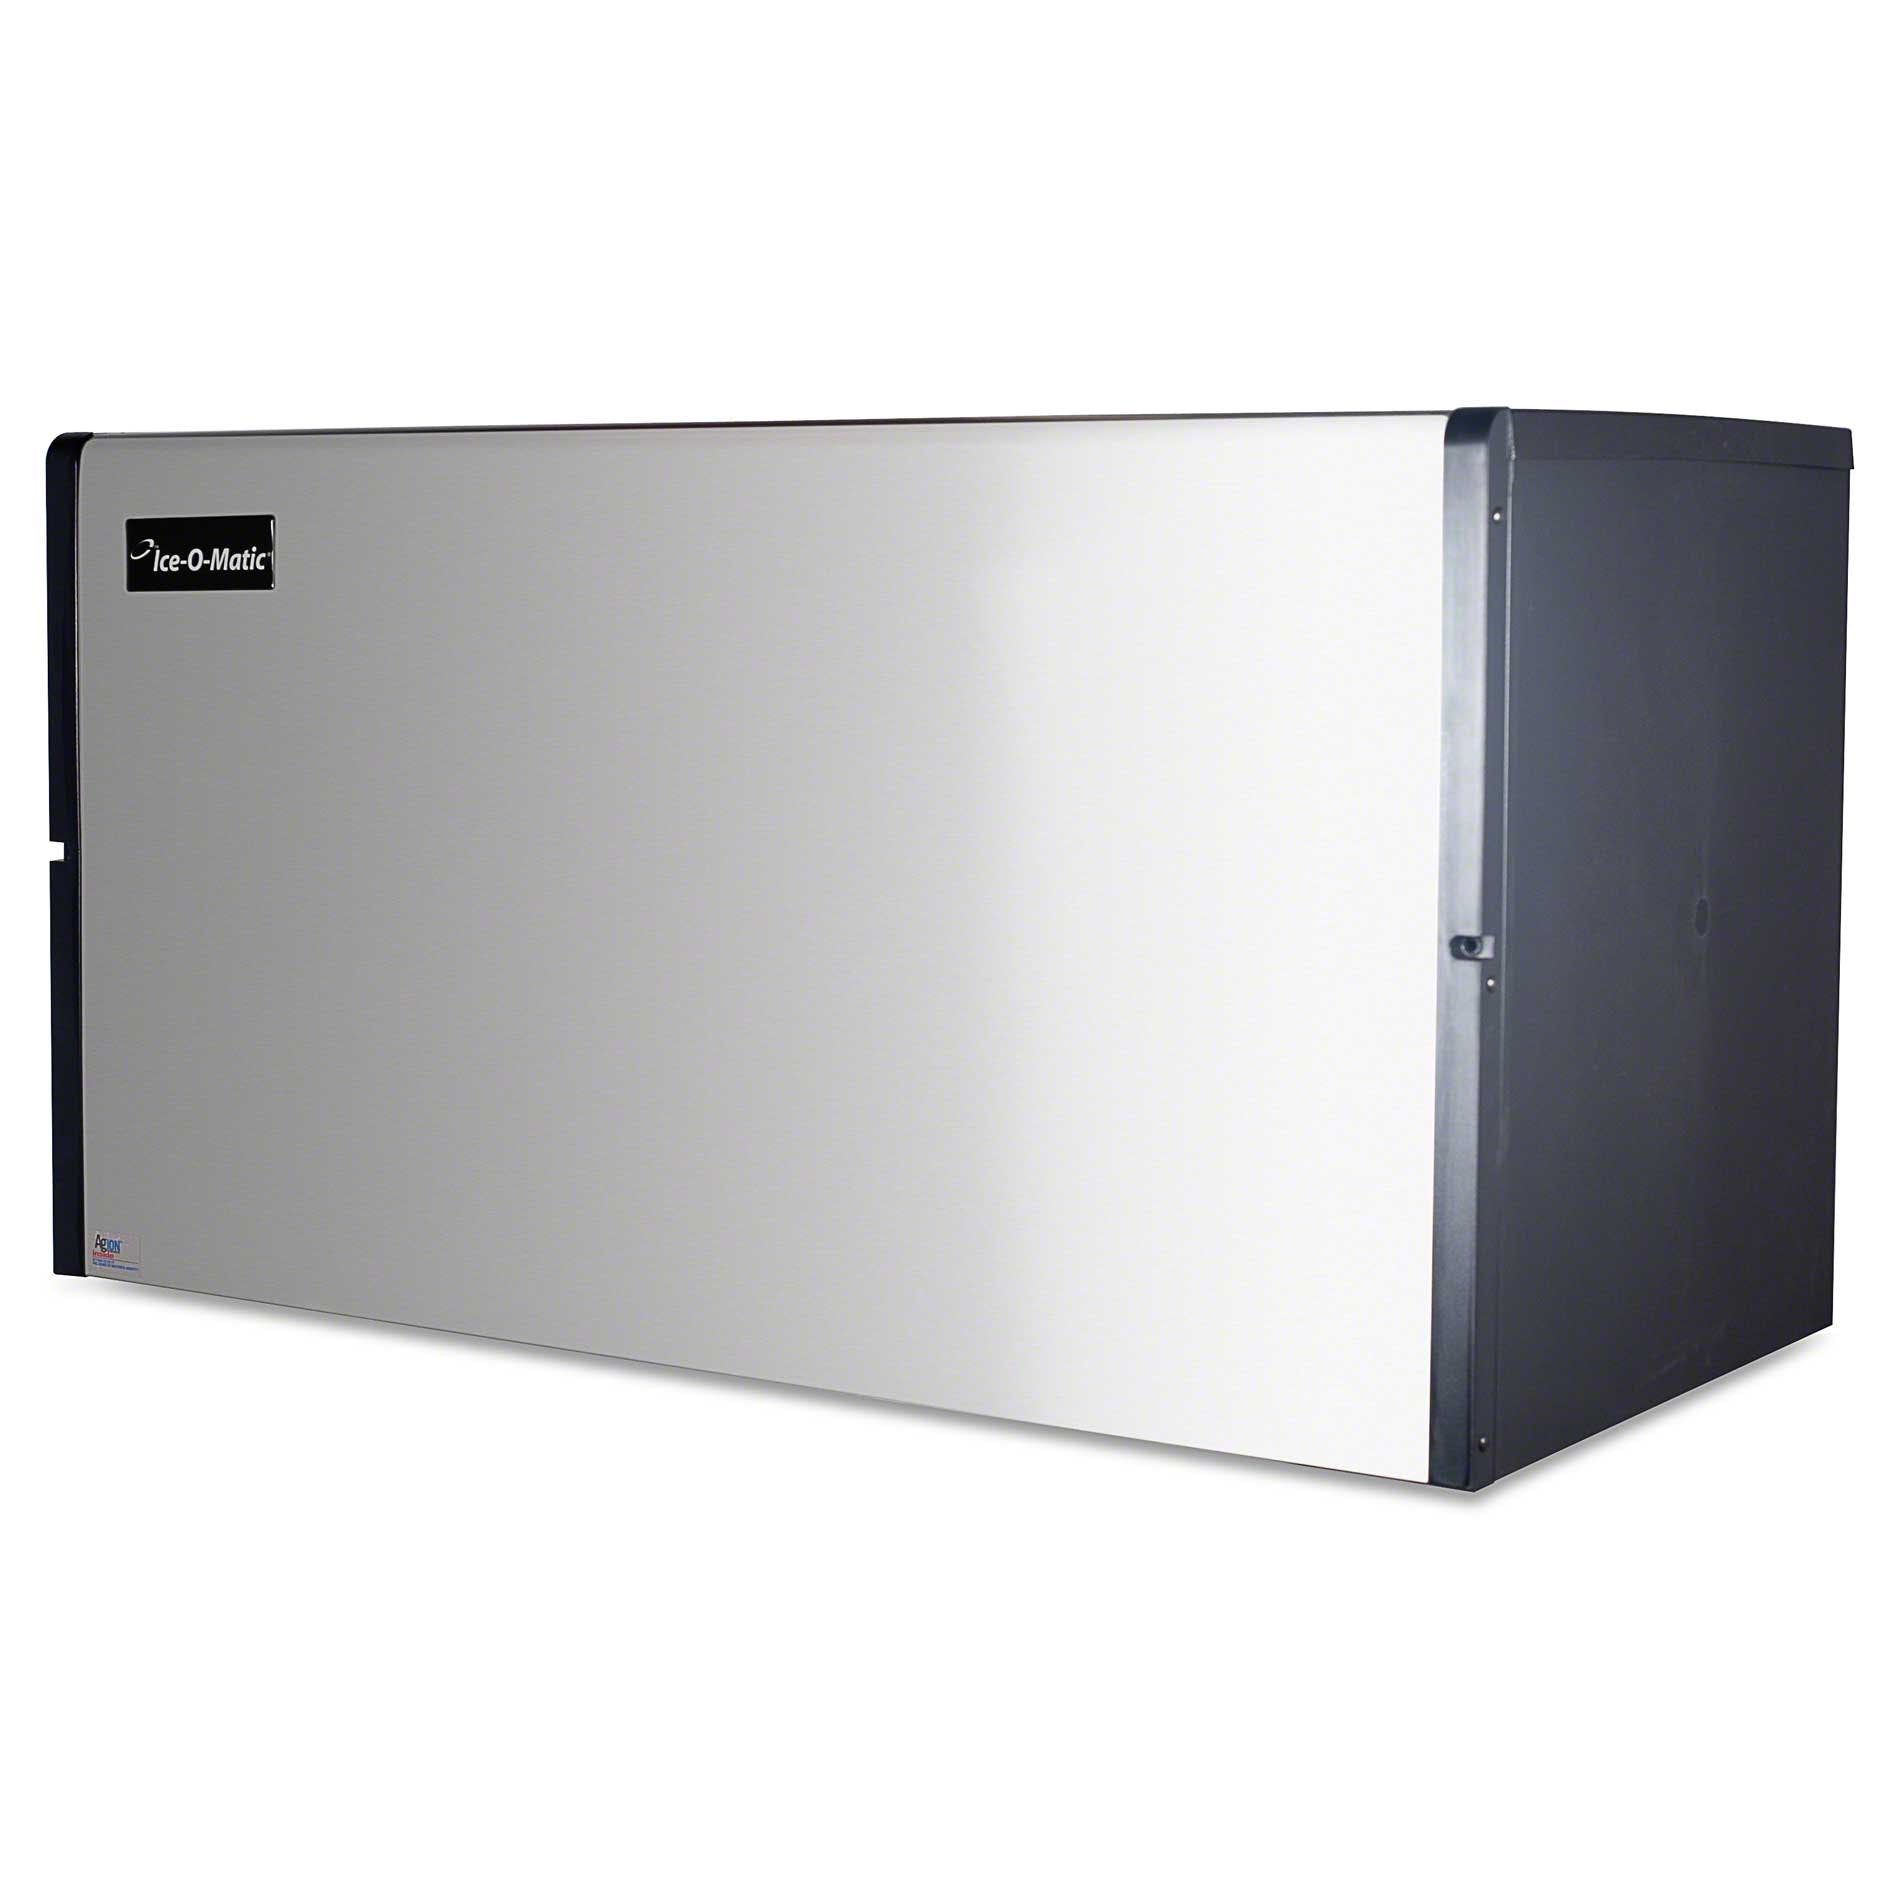 Ice-O-Matic - ICE1806FR 1617 lb Full Cube Ice Machine - sold by Food Service Warehouse